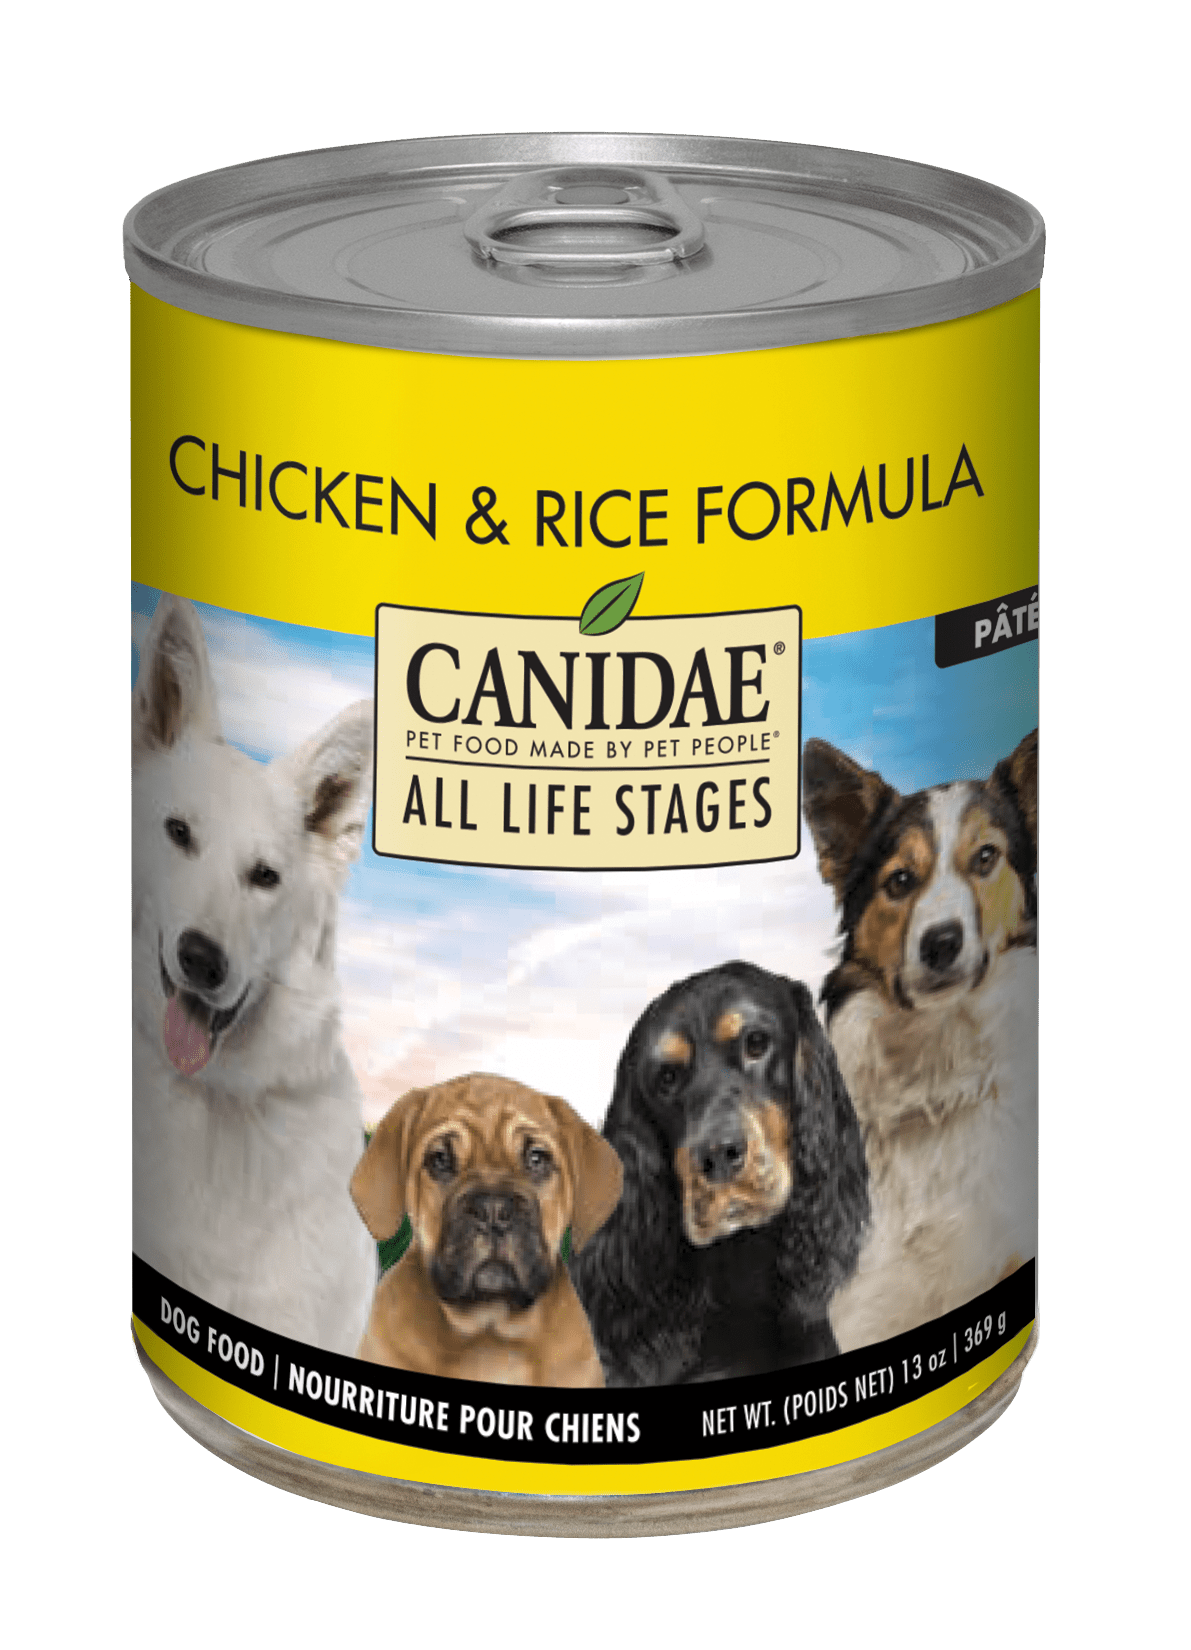 Canidae Life Stages Chicken & Rice Formula Canned Dog Food Image